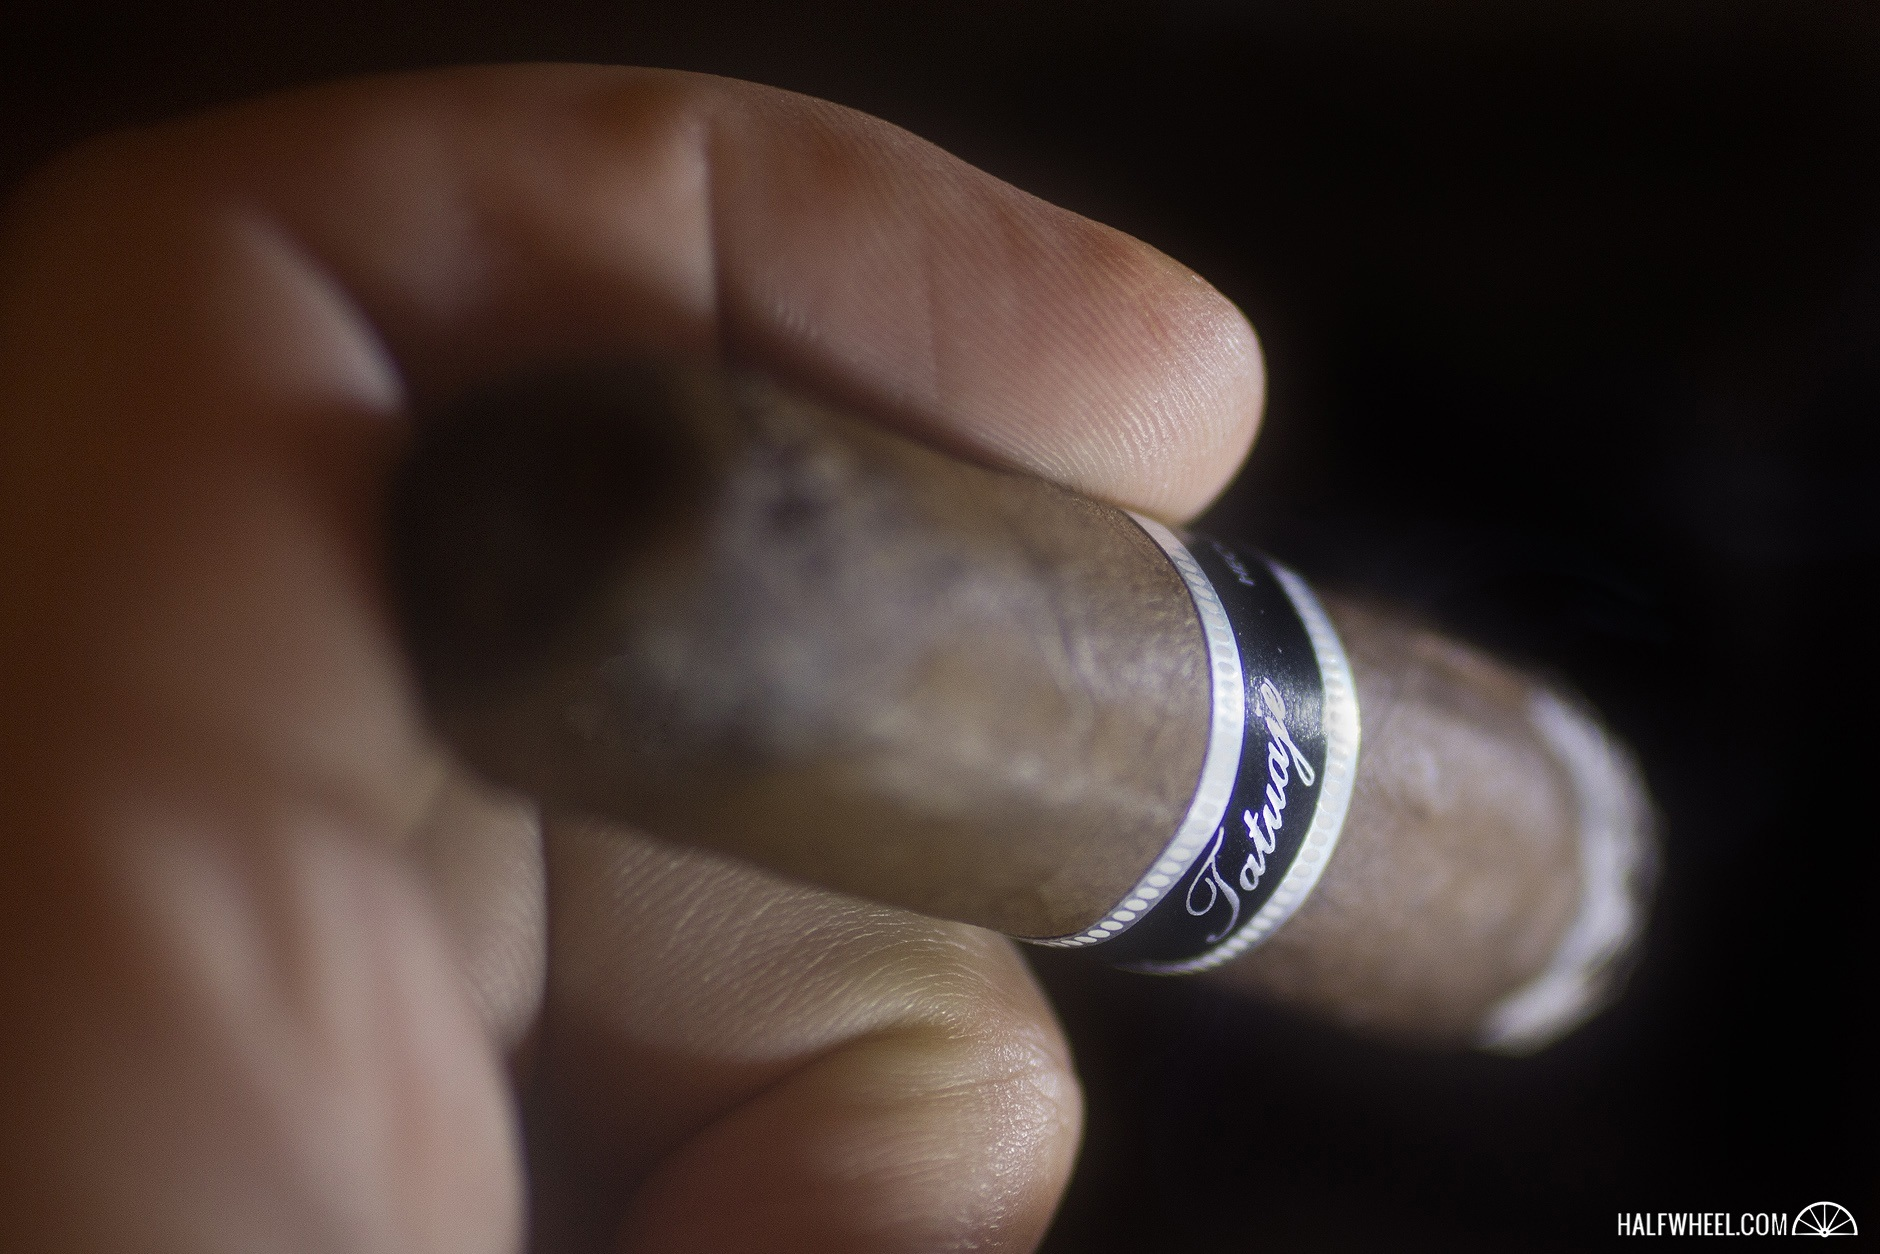 Tatuaje Black Label Corona Gorda  2013